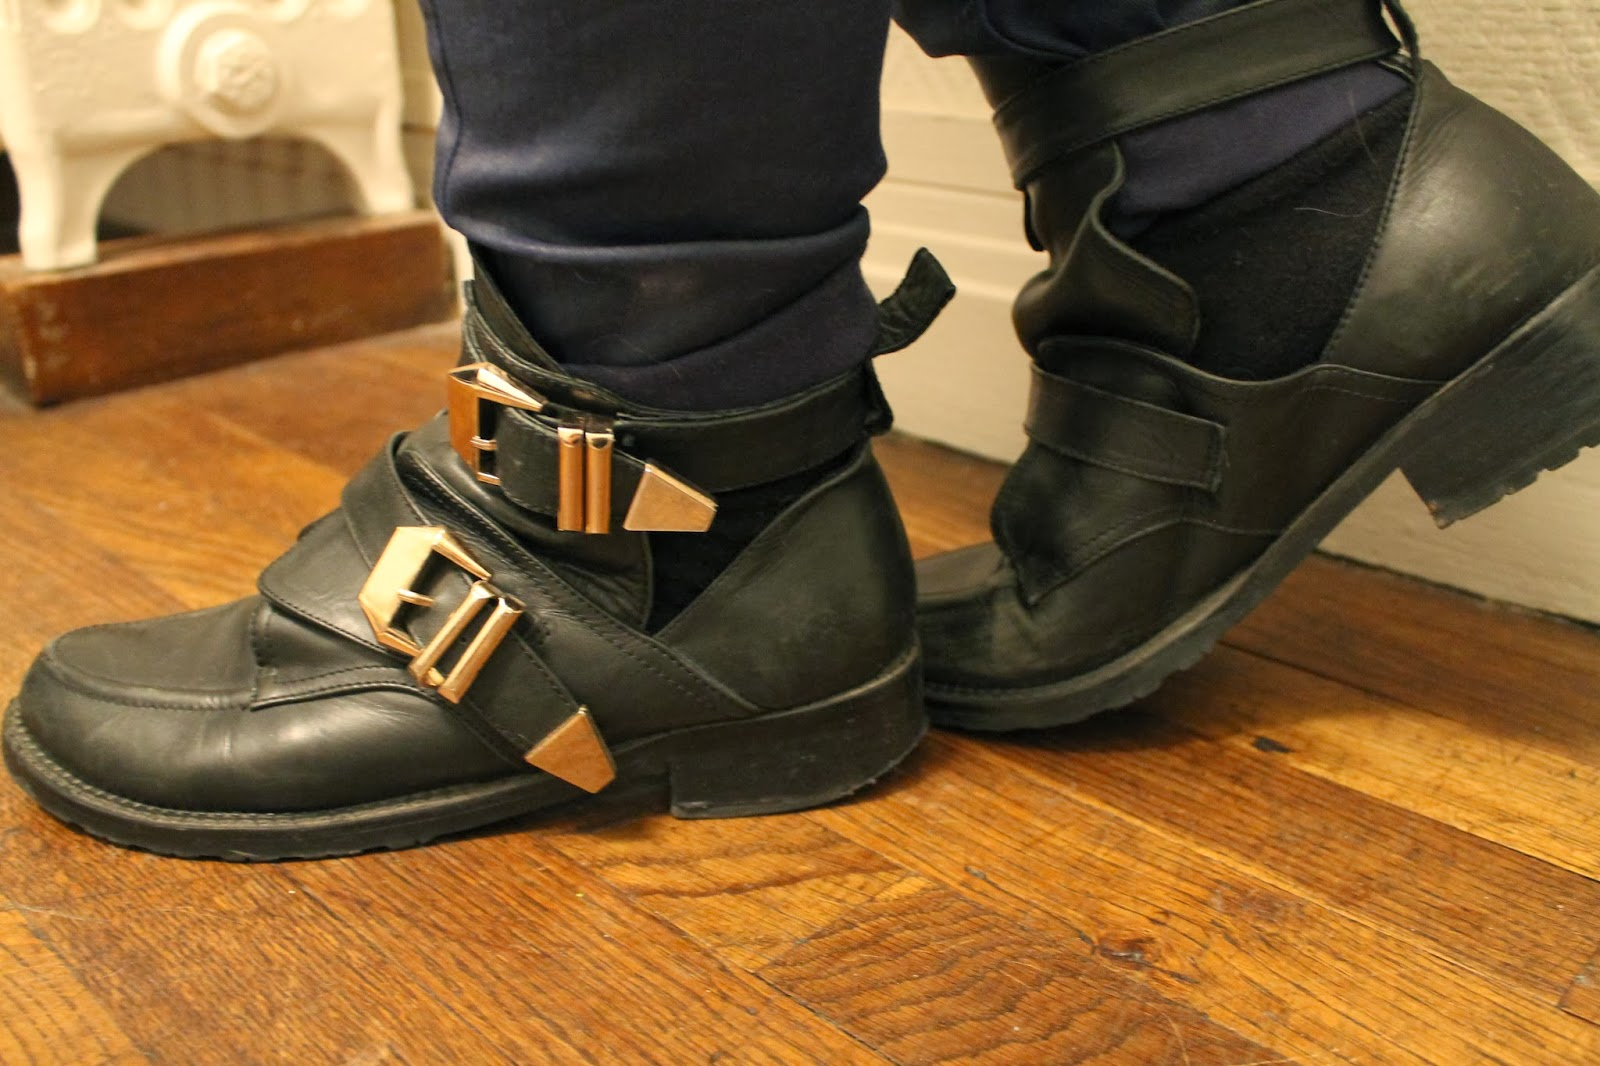 http://www.choies.com/product/the-metal-clasp-and-hollow-round-toe-shoes1?cid=1401